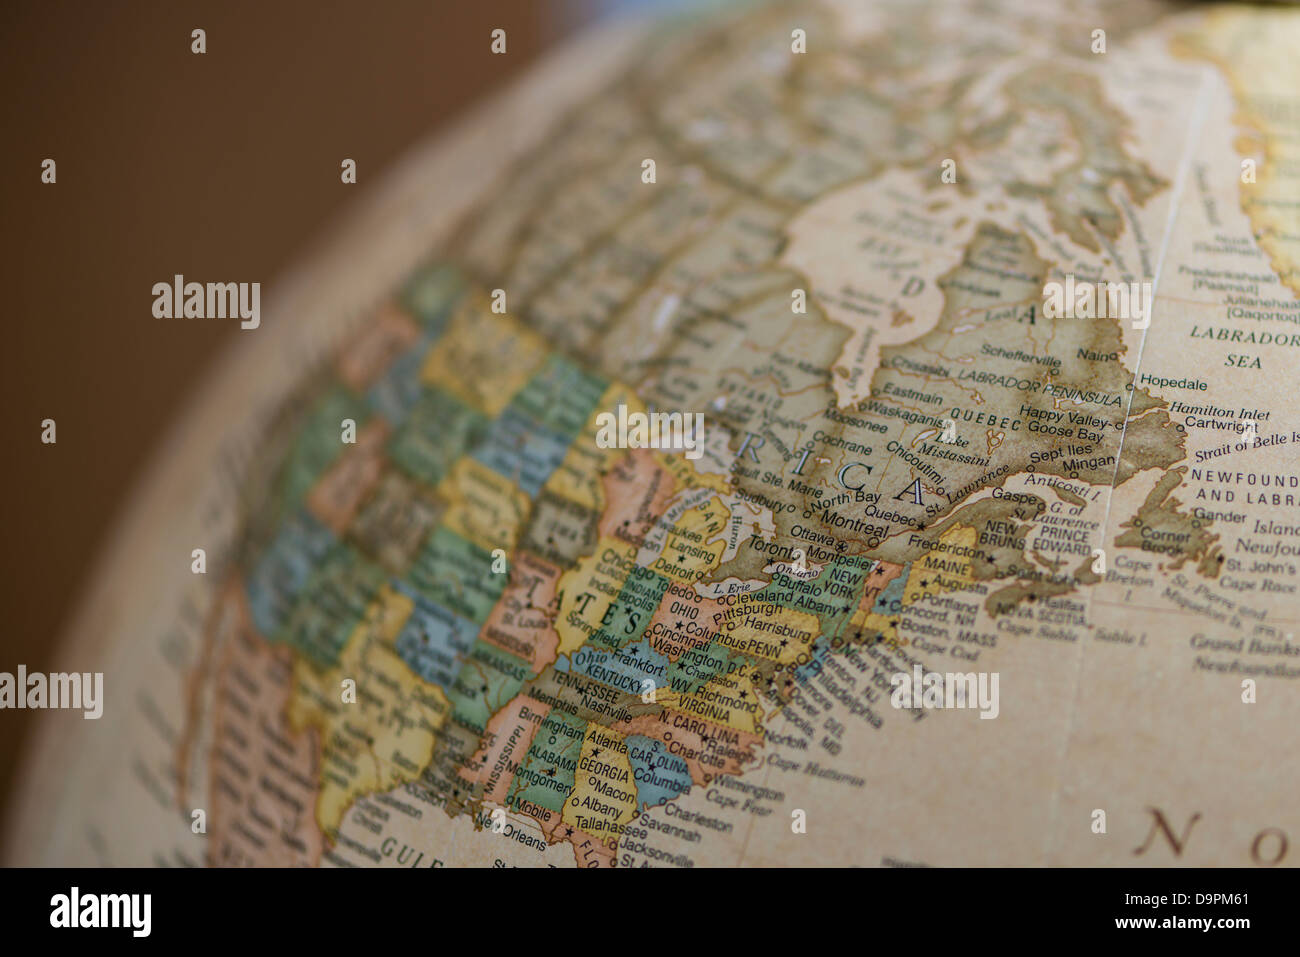 Corner of the globe showing North America including Canada and the